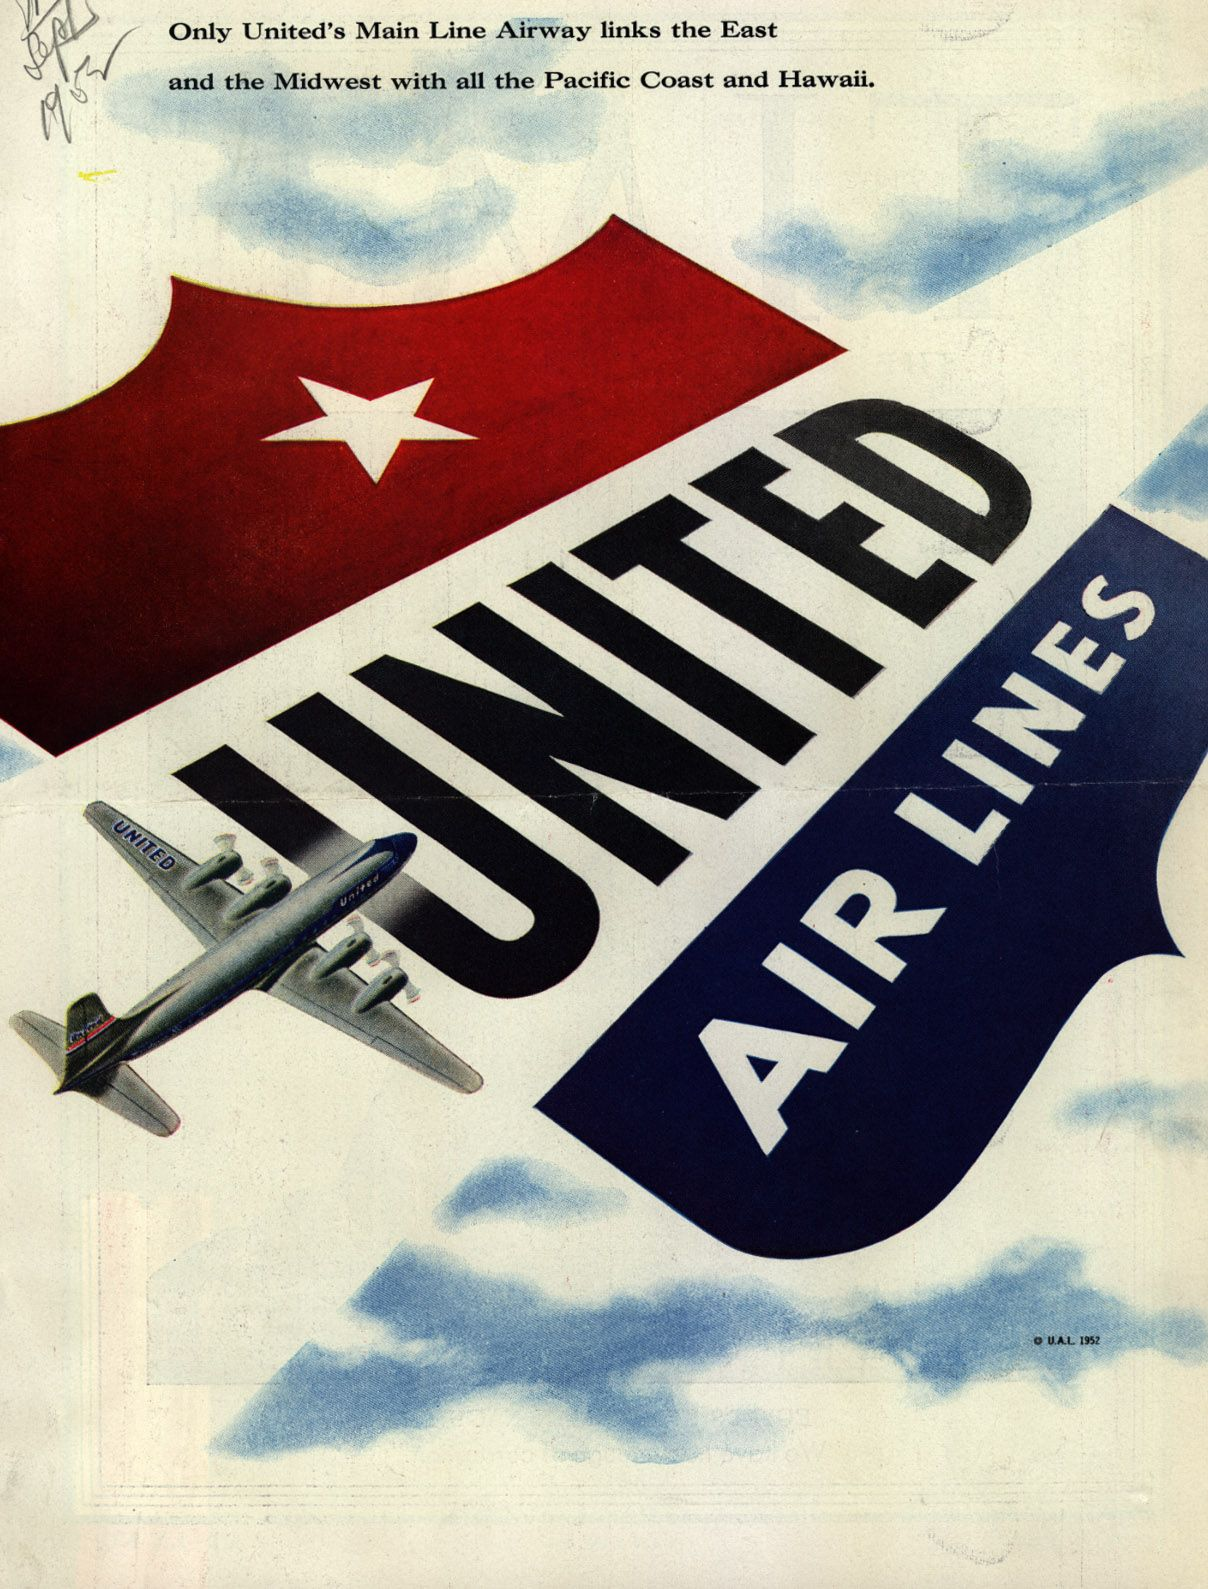 Voyage En Avion United Air Lines United Airlines Pinterest Voyage Avion And